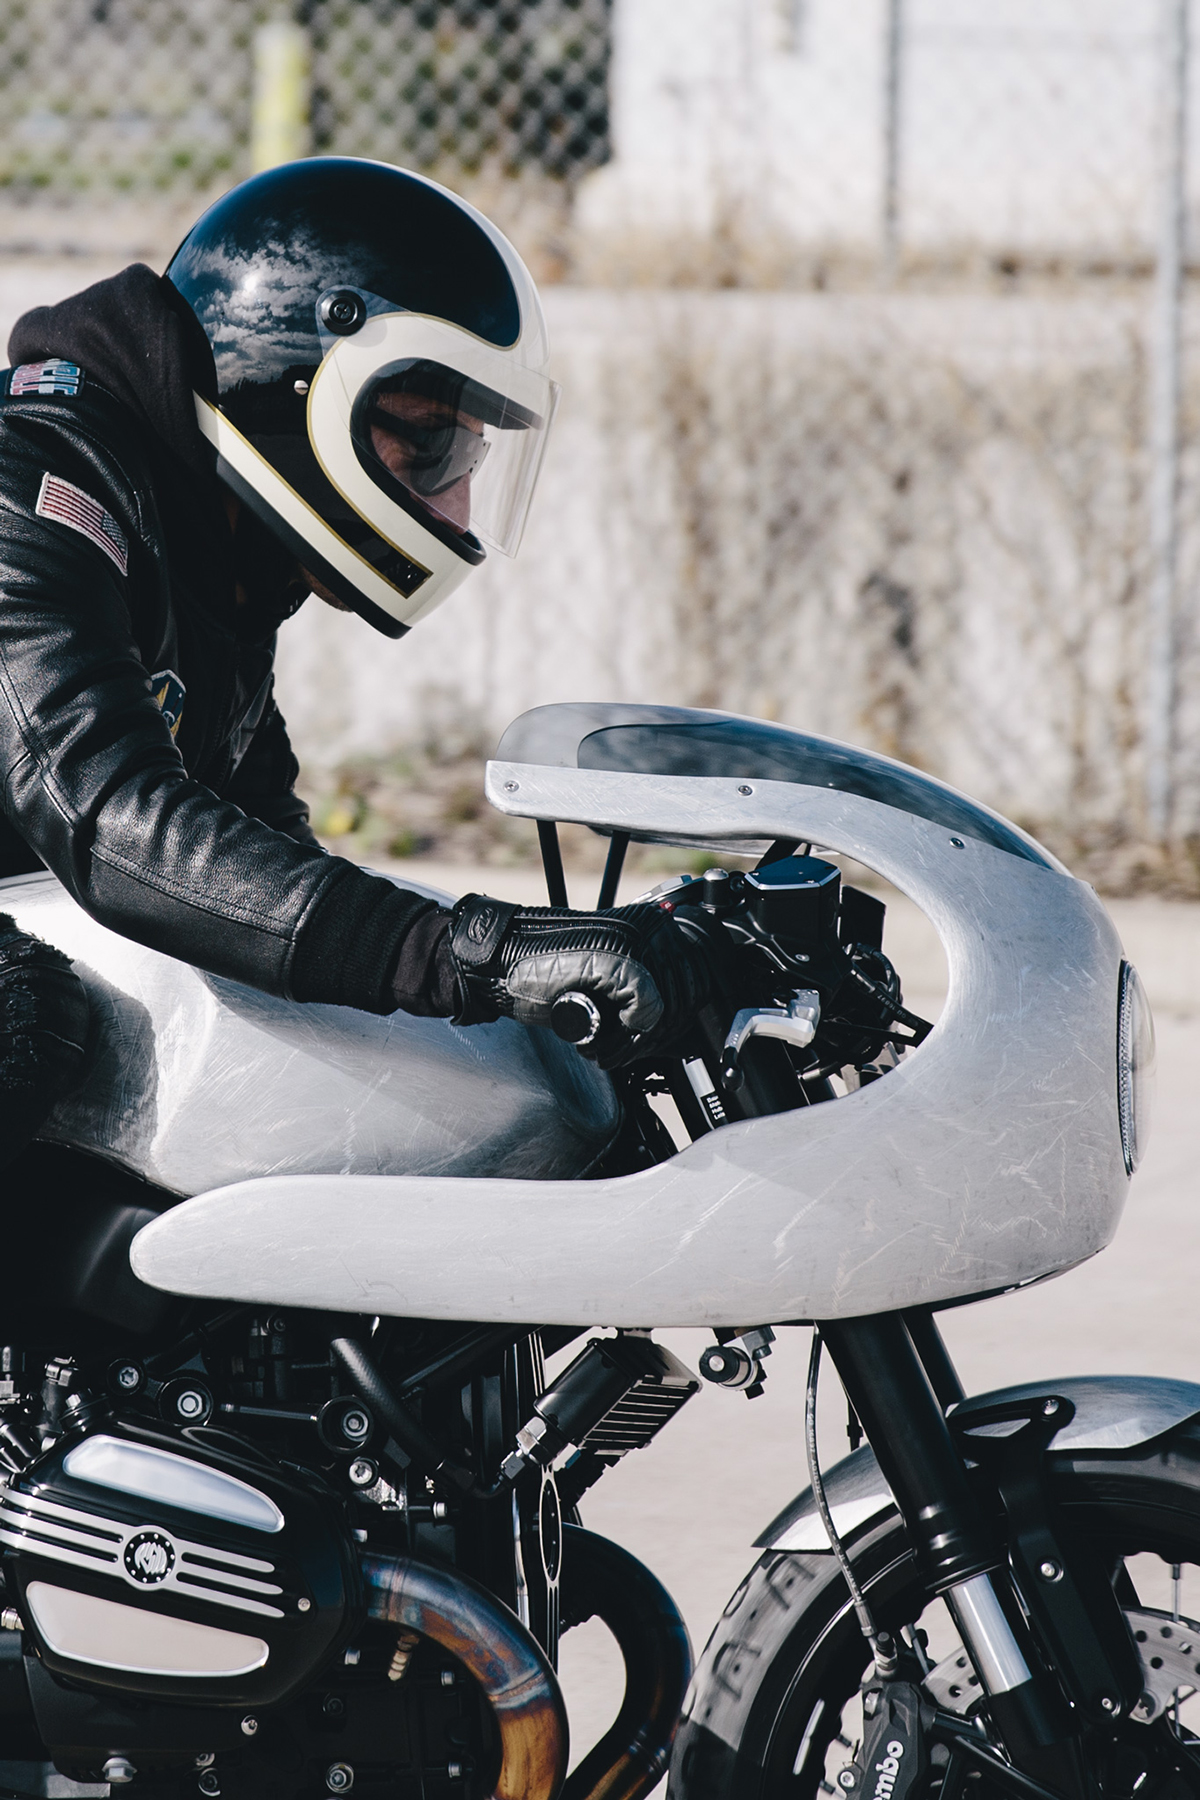 BMW_RNineT_Cafe_Racer_7476